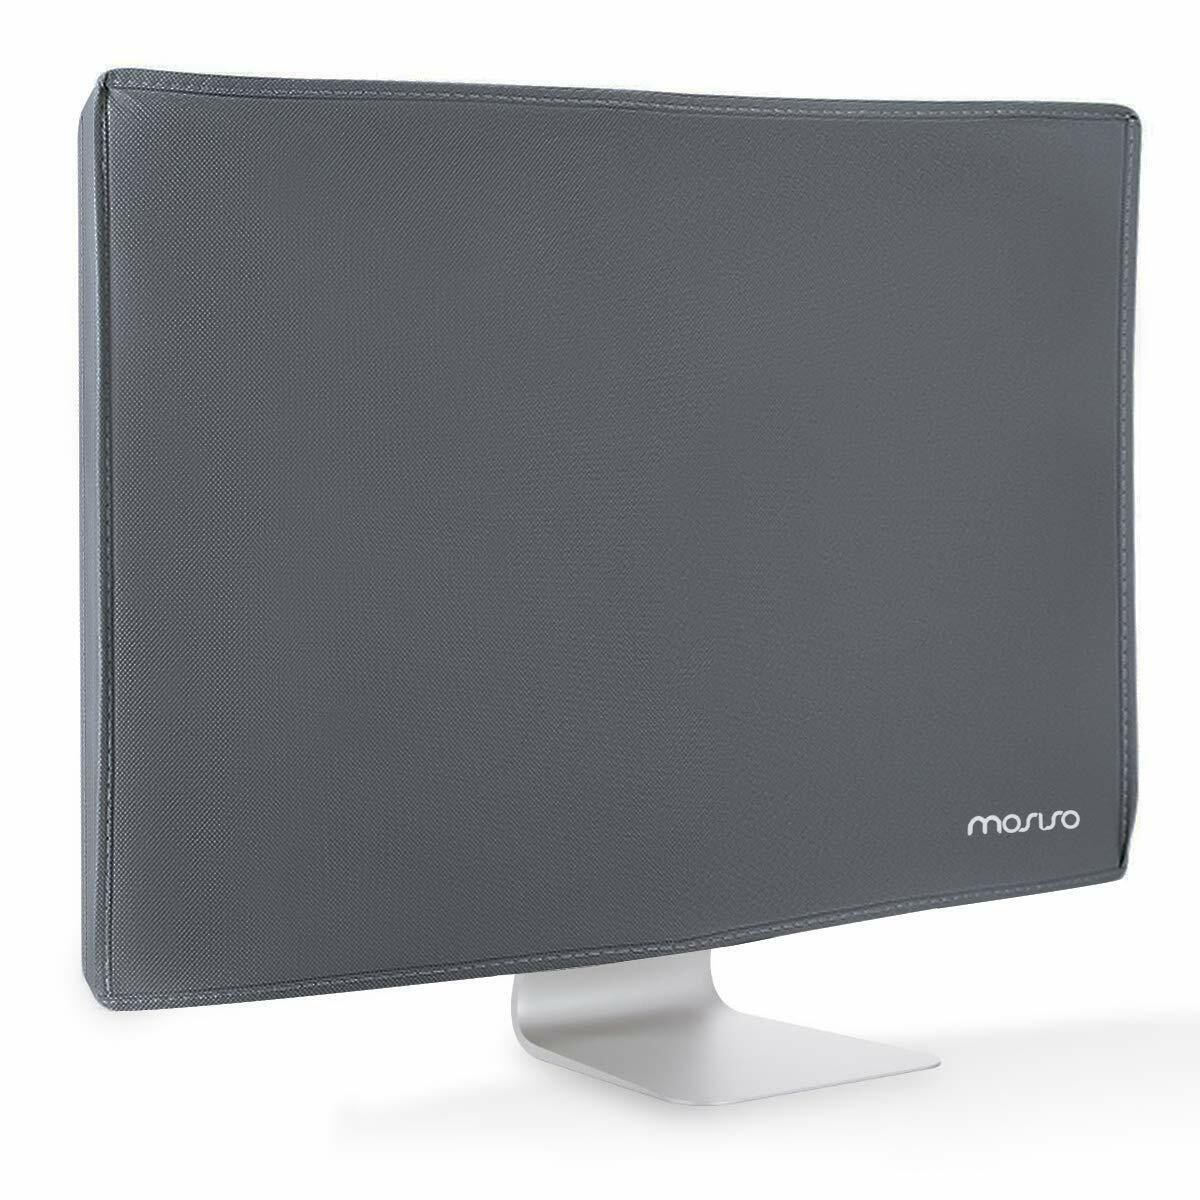 Monitor Dust Cover 1935 Inch AntiStatic LCDLEDHD Panel Case Screen Computer